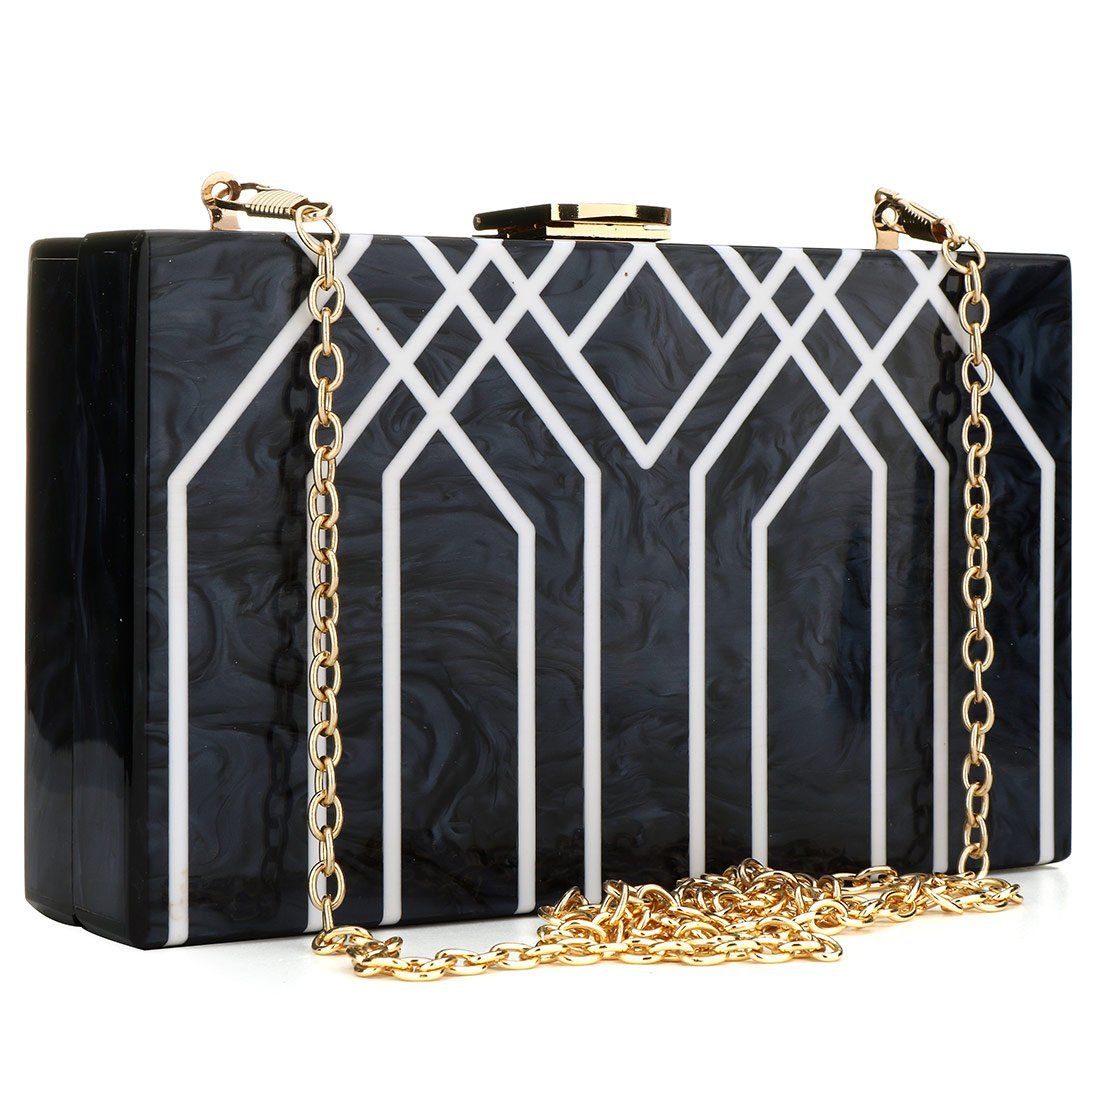 Evening Handbag Box Acrylic Clutch Stripes Shoulder Bag for Party (Black) by KNUS (Image #1)